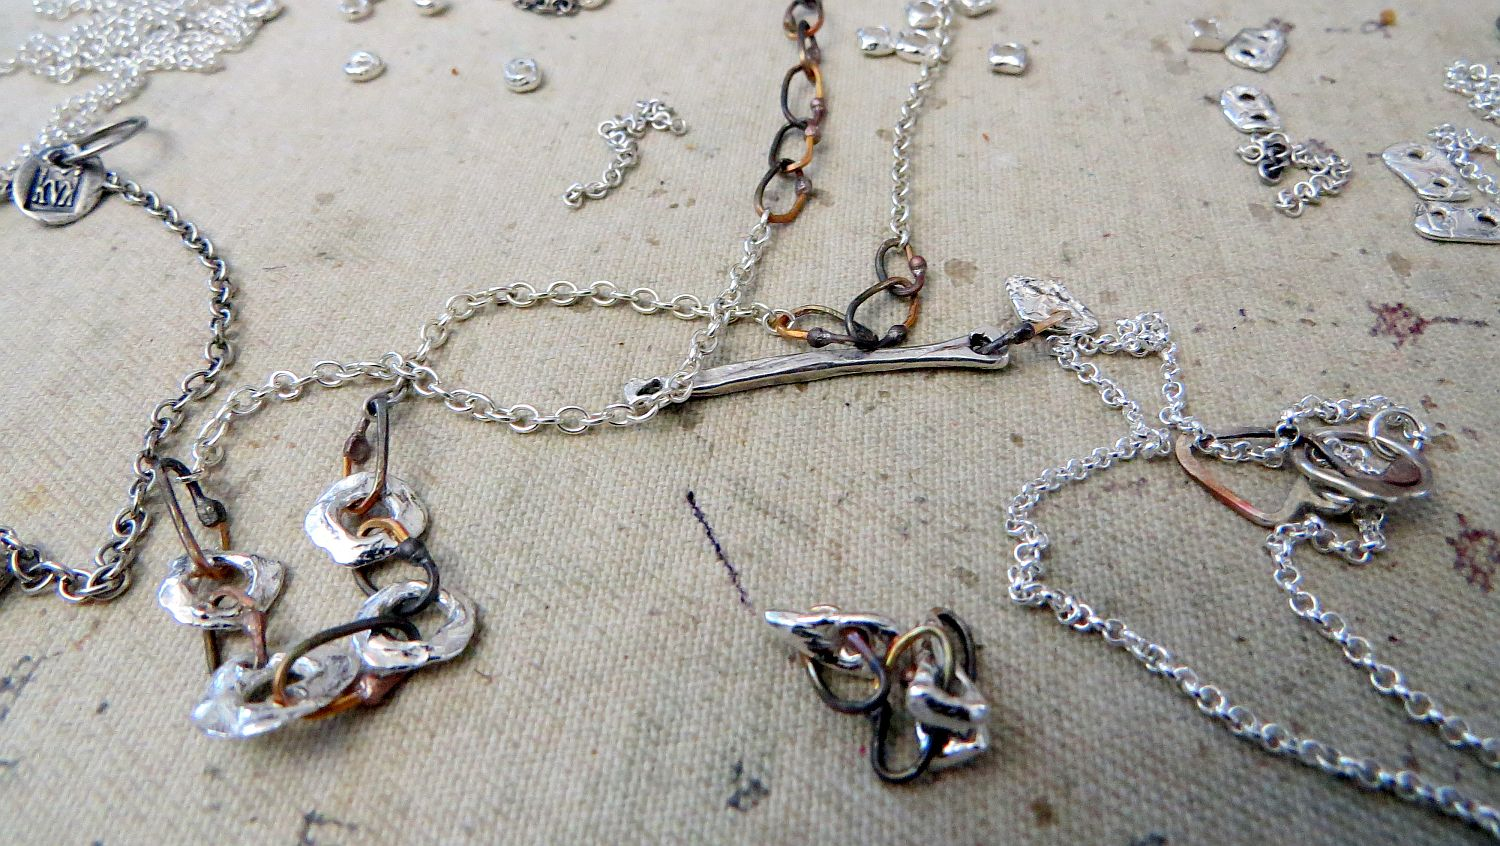 working on some bigger pieces and chain link combinations